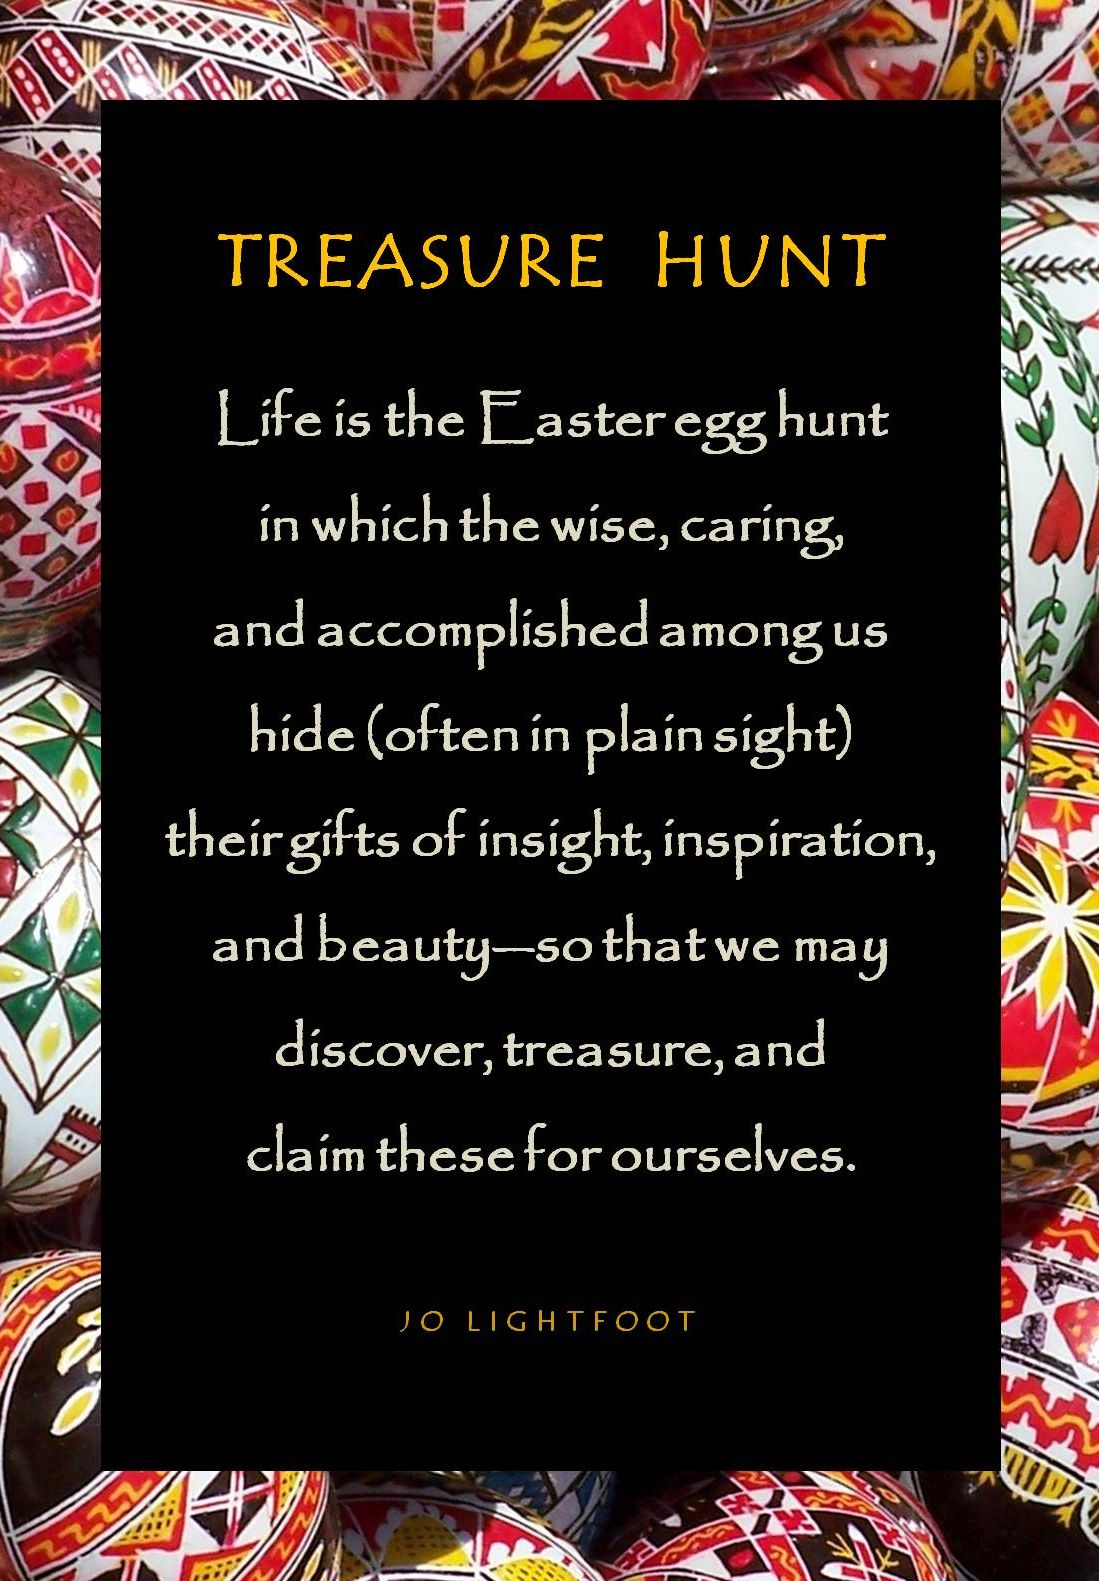 Treasure hunt easter poem jo lightfoot treasure hunt easter poem negle Images